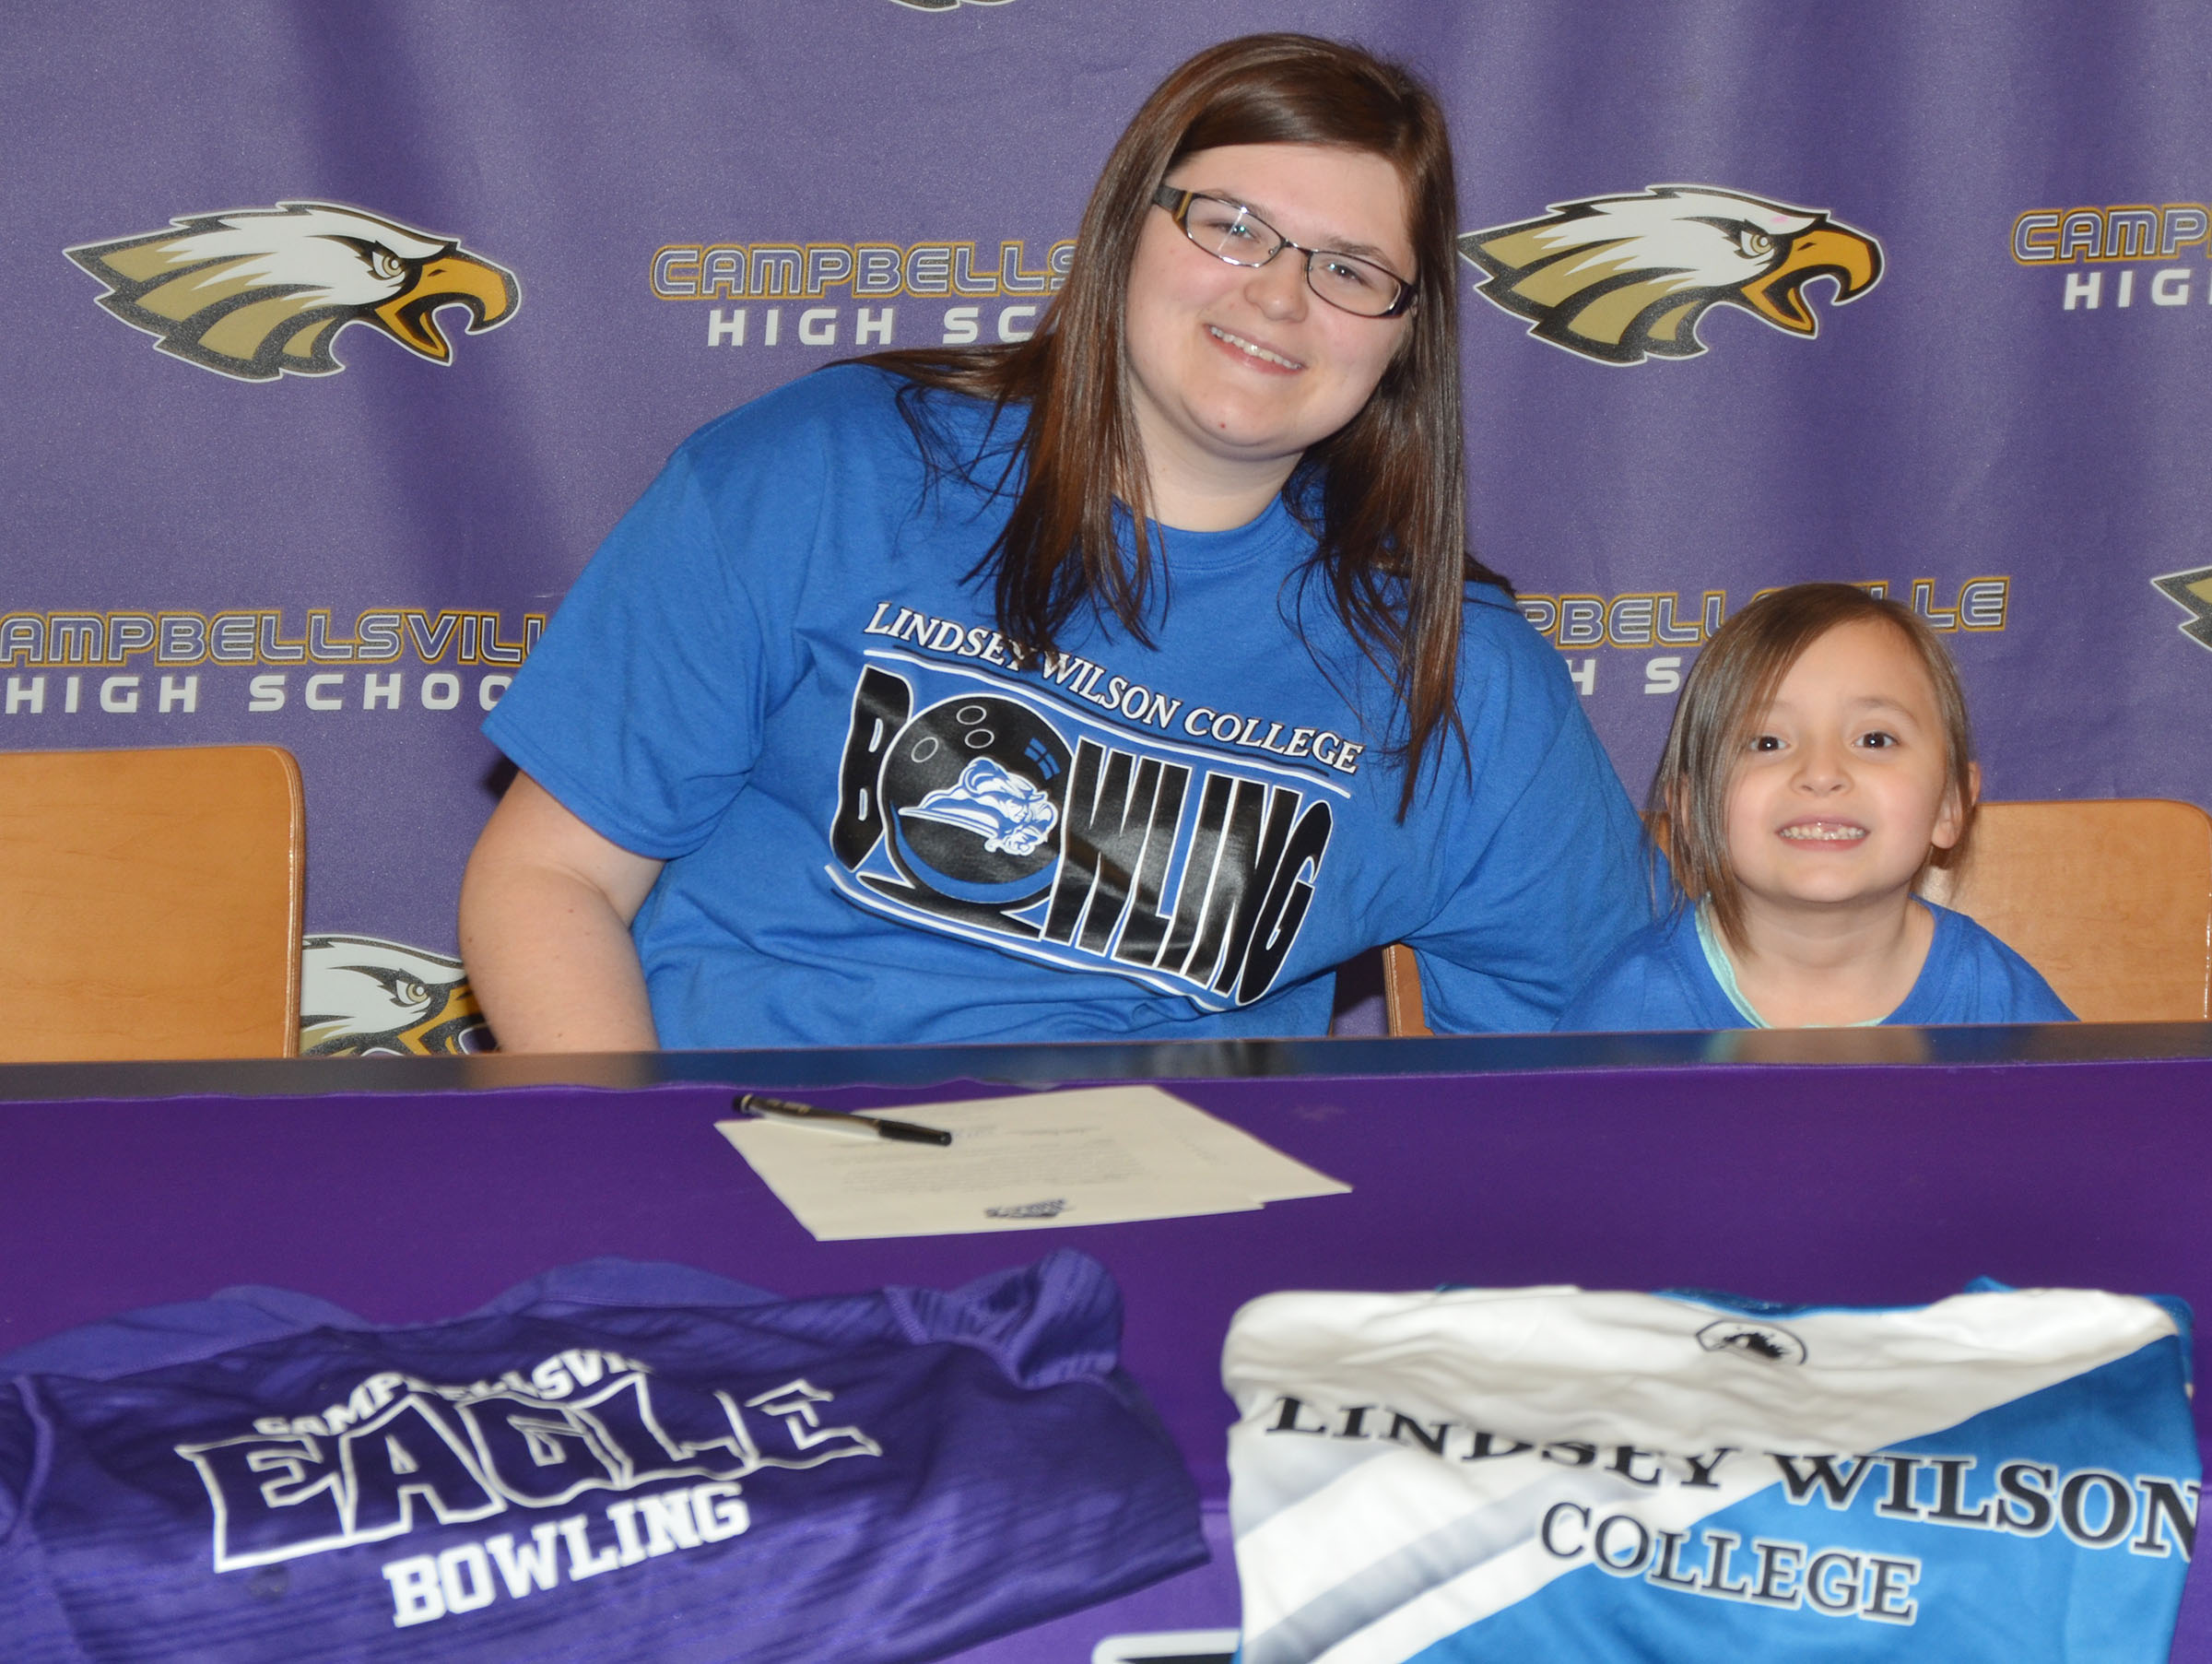 Campbellsville High School senior Vera Brown will continue her academic and bowling career at Lindsey Wilson College in the fall. She officially signed her letter of intent in a special ceremony on Wednesday, Feb. 1. She is pictured with her cousin, Gabriella Tate, who is a kindergartener at Campbellsville Elementary School.